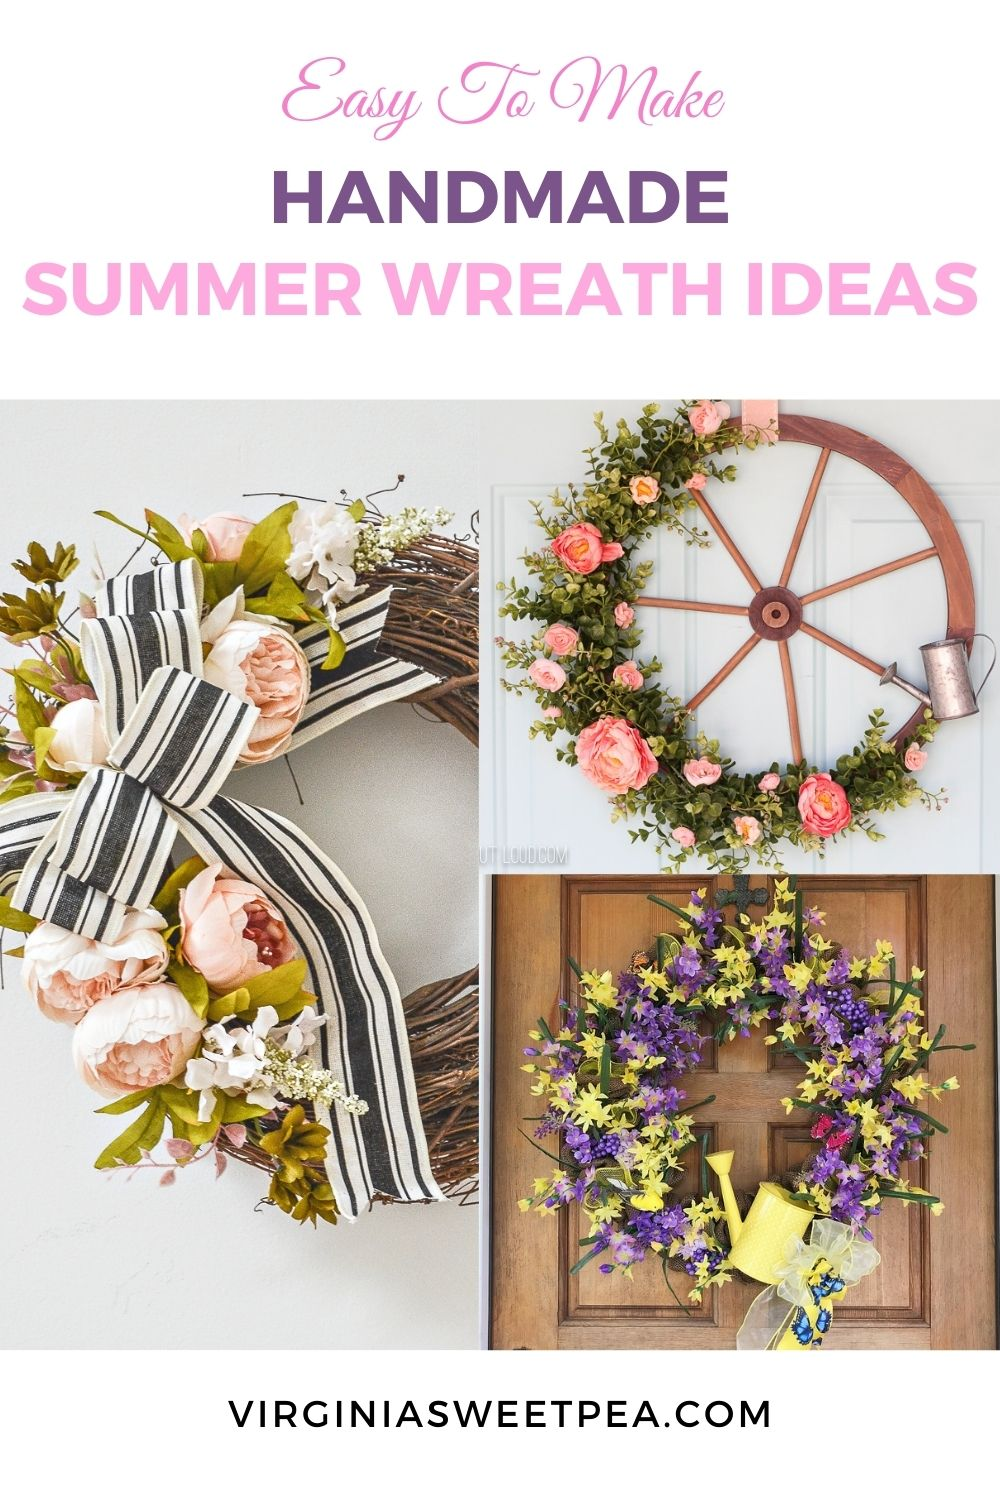 easy to make handmade summer wreath ideas pin collage with text overlay